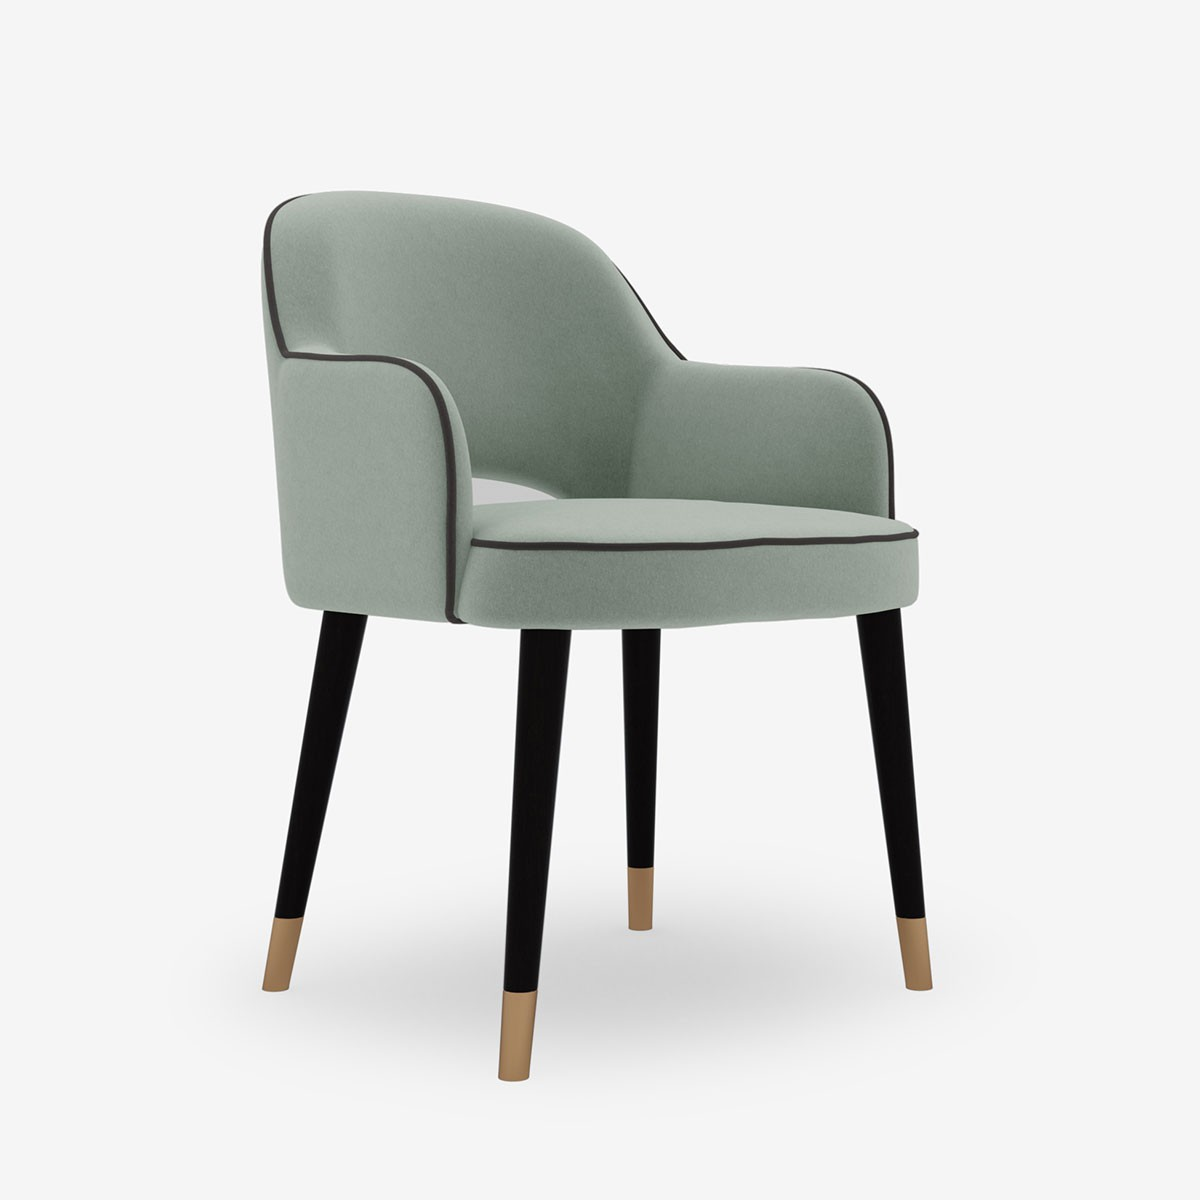 Image shows Kate's Occasional Chair in Relaxed Wool Celadon